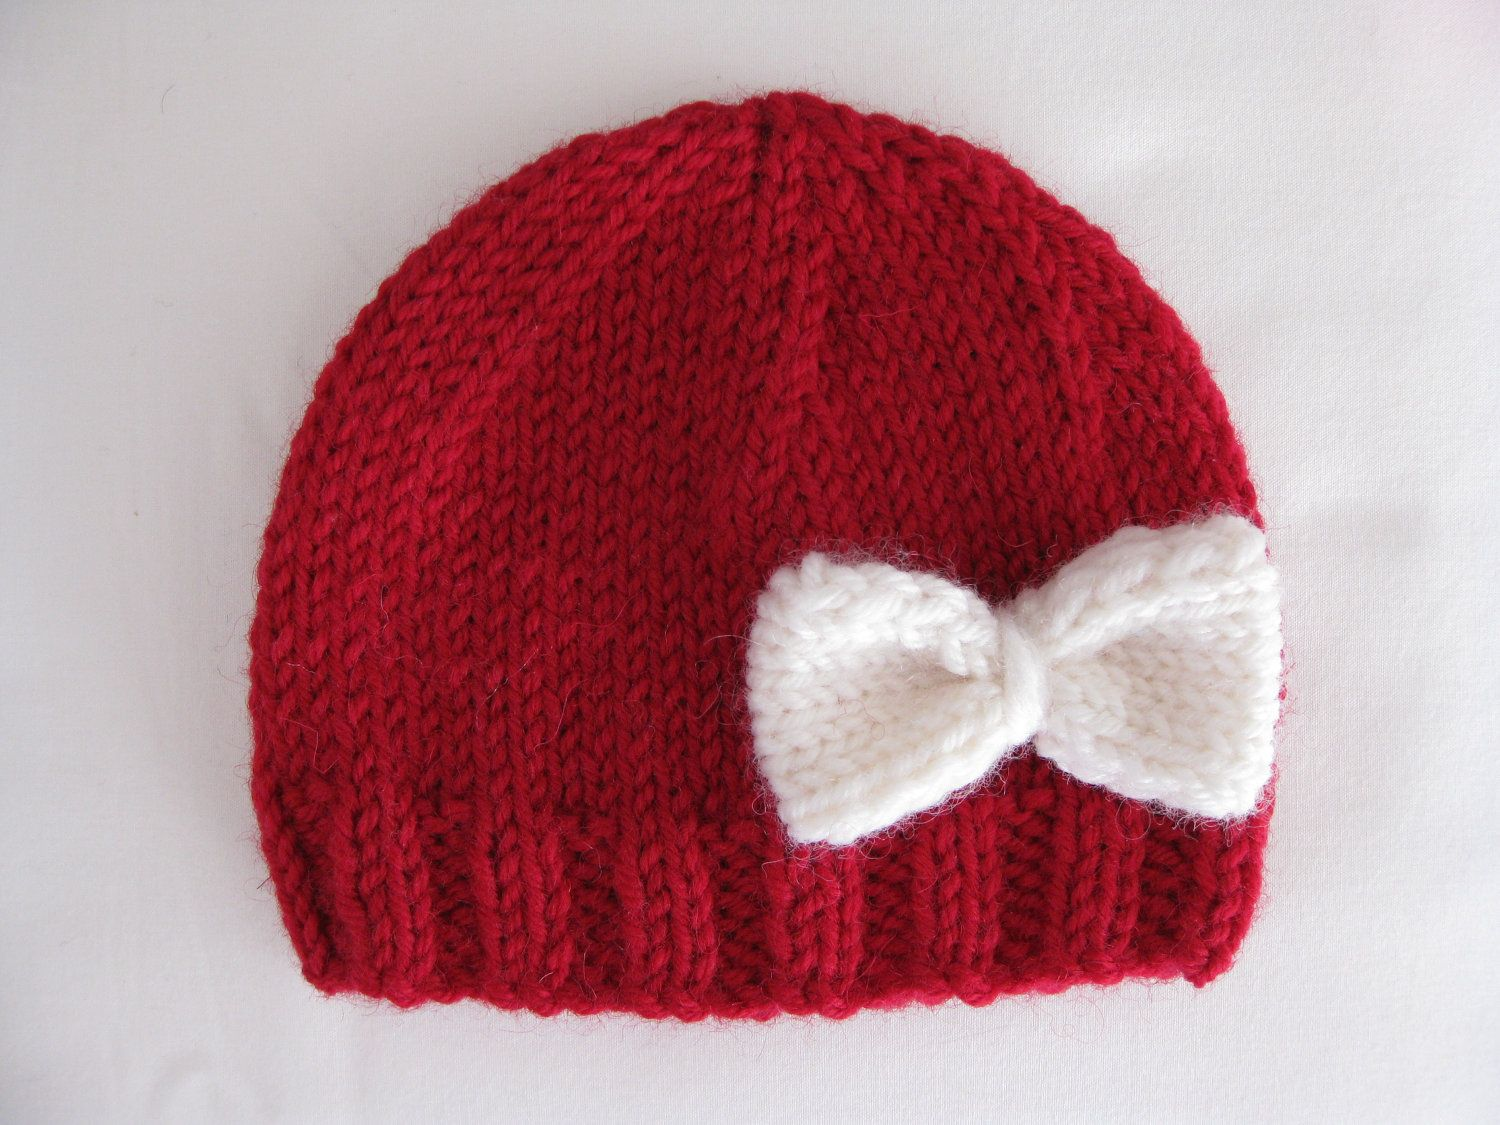 Pattern knit preemie newborn hat bow baby beanie 8ply DK double knit ...